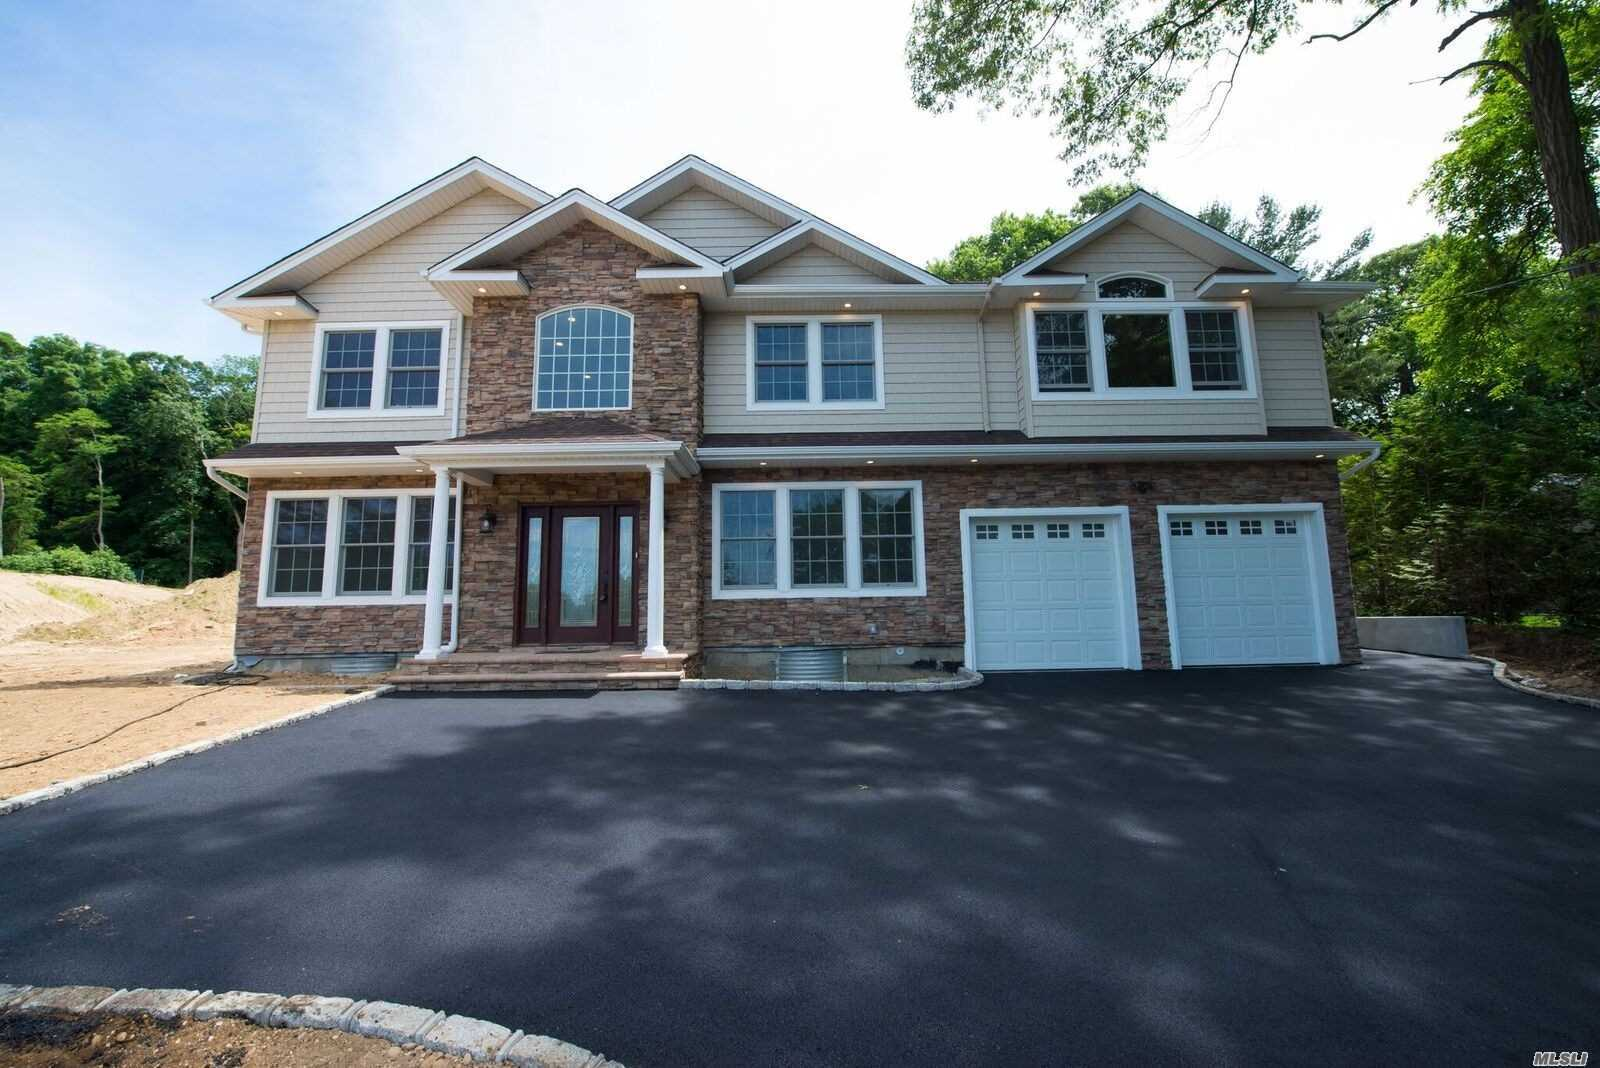 Beautiful New Construction Home Built On Shy Of Half An Acre. Wood Floors, Granite And Marble Counter Tops, Ss Appliances, Ceramic Floors, Led Hi Hats. Constructed On A Hill. Very, Very Impressive. Way Too Much To List! Go Show And Sell! Blue Ribbon Village Elementary School. Minutes From The Lirr.